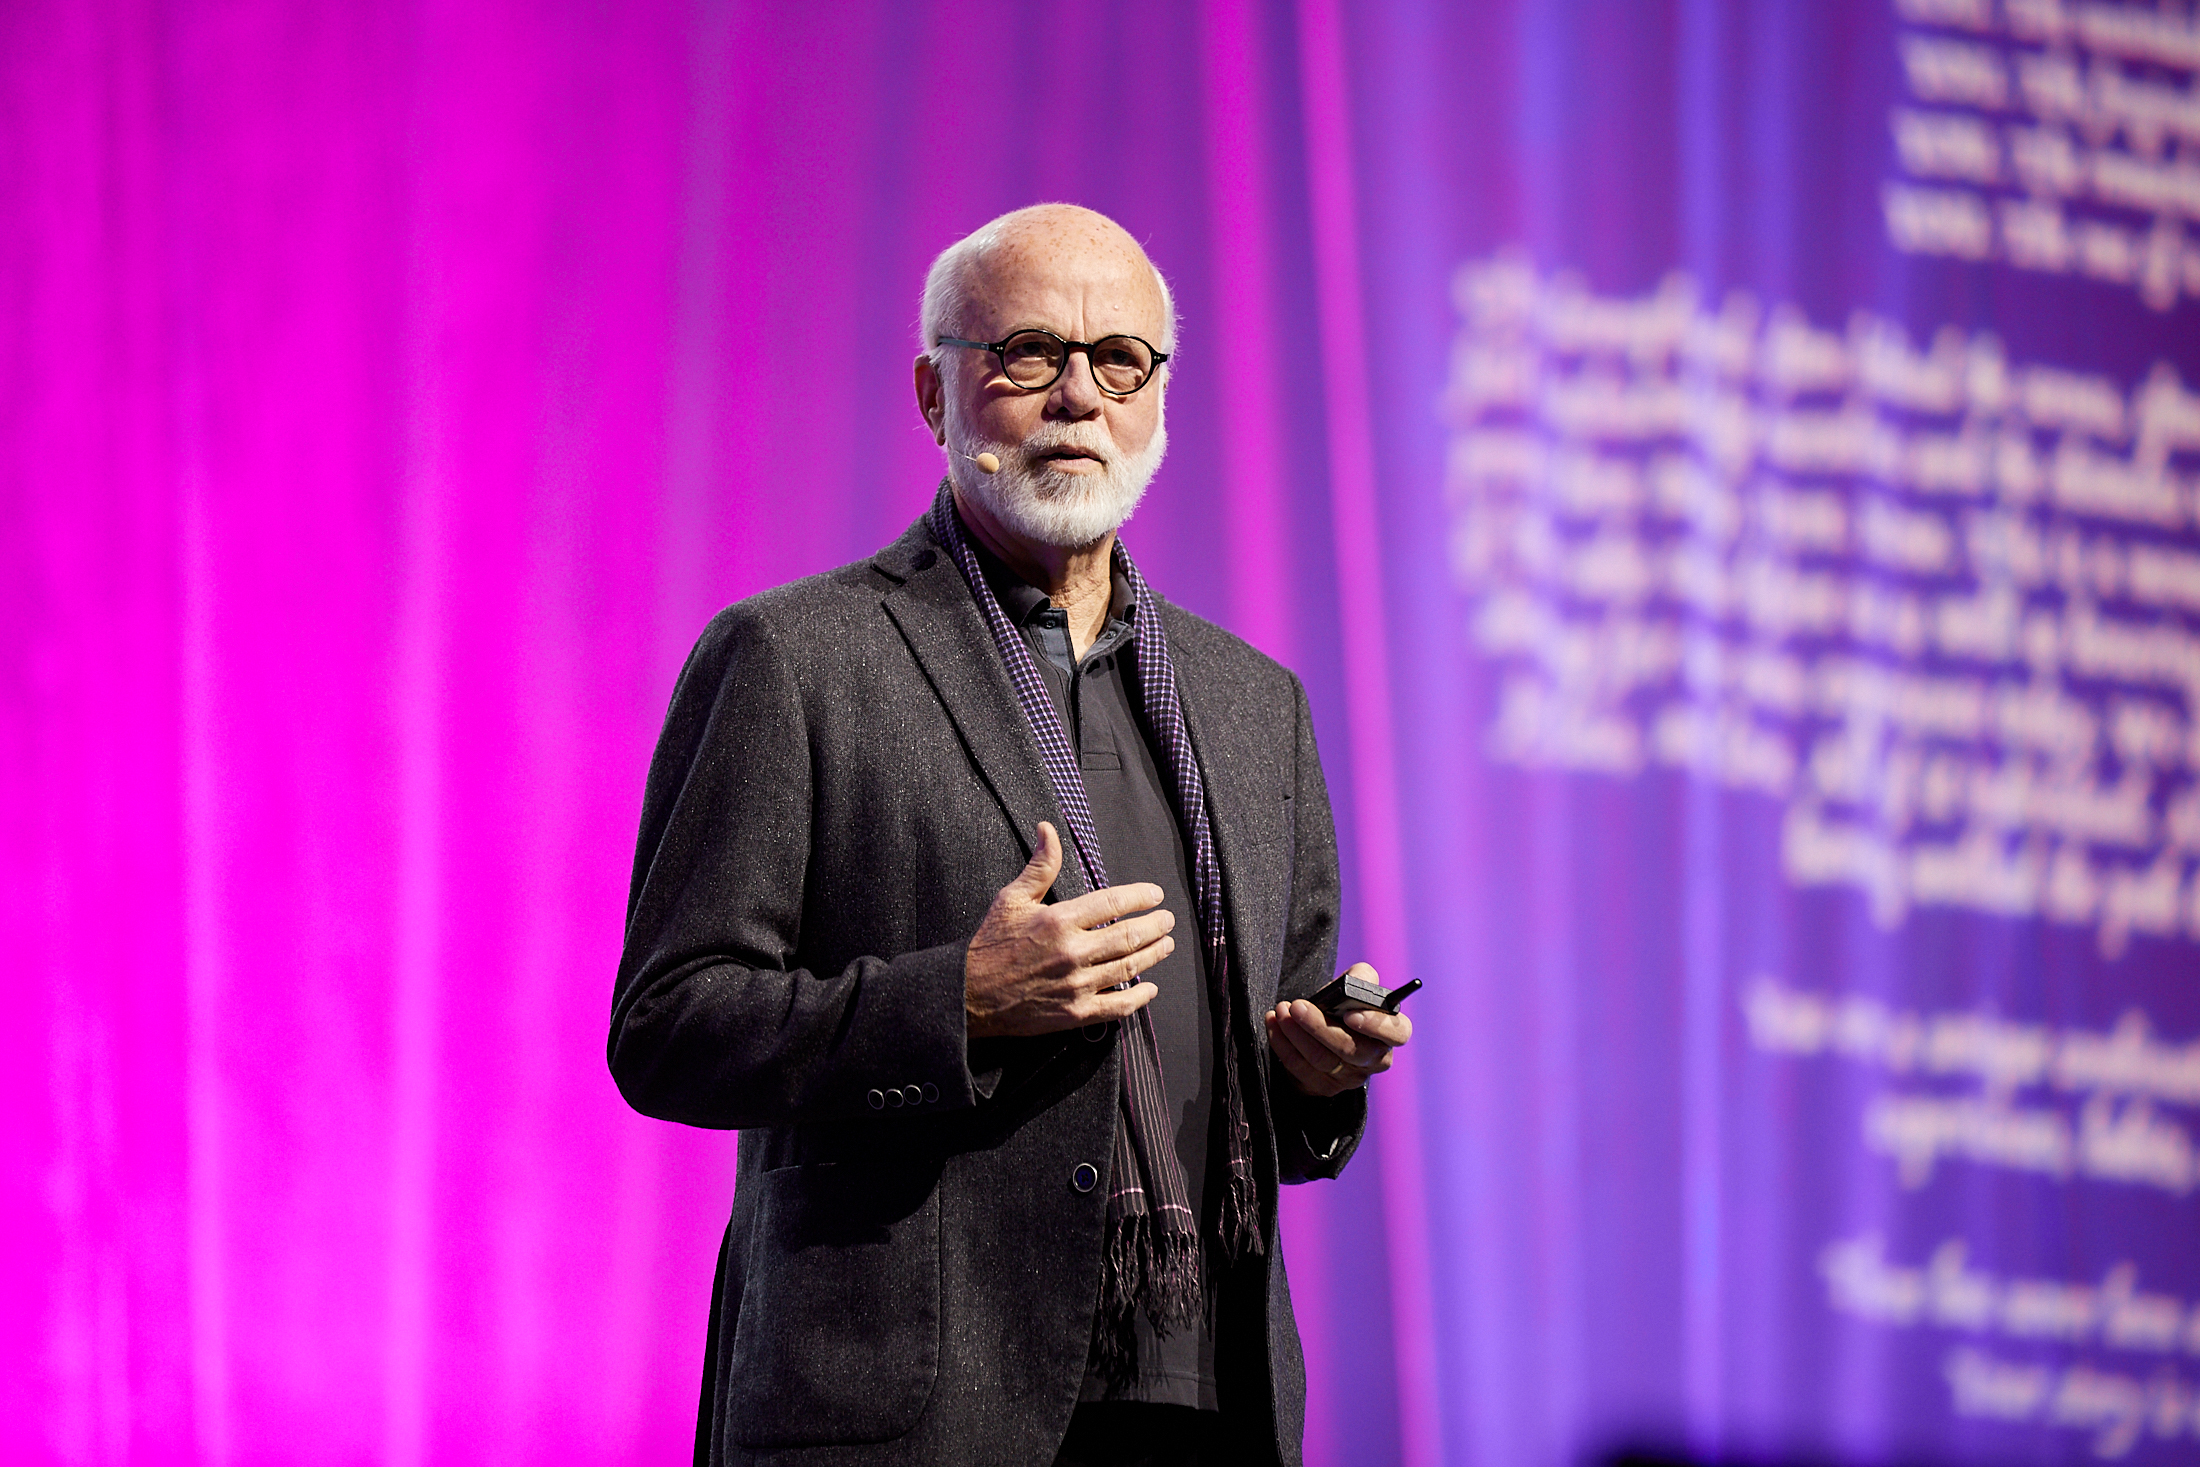 David Hume Kennerly, Pulitzer Prize-winning White House photographer, keynotes RootsTech 2020 Salt Lake.